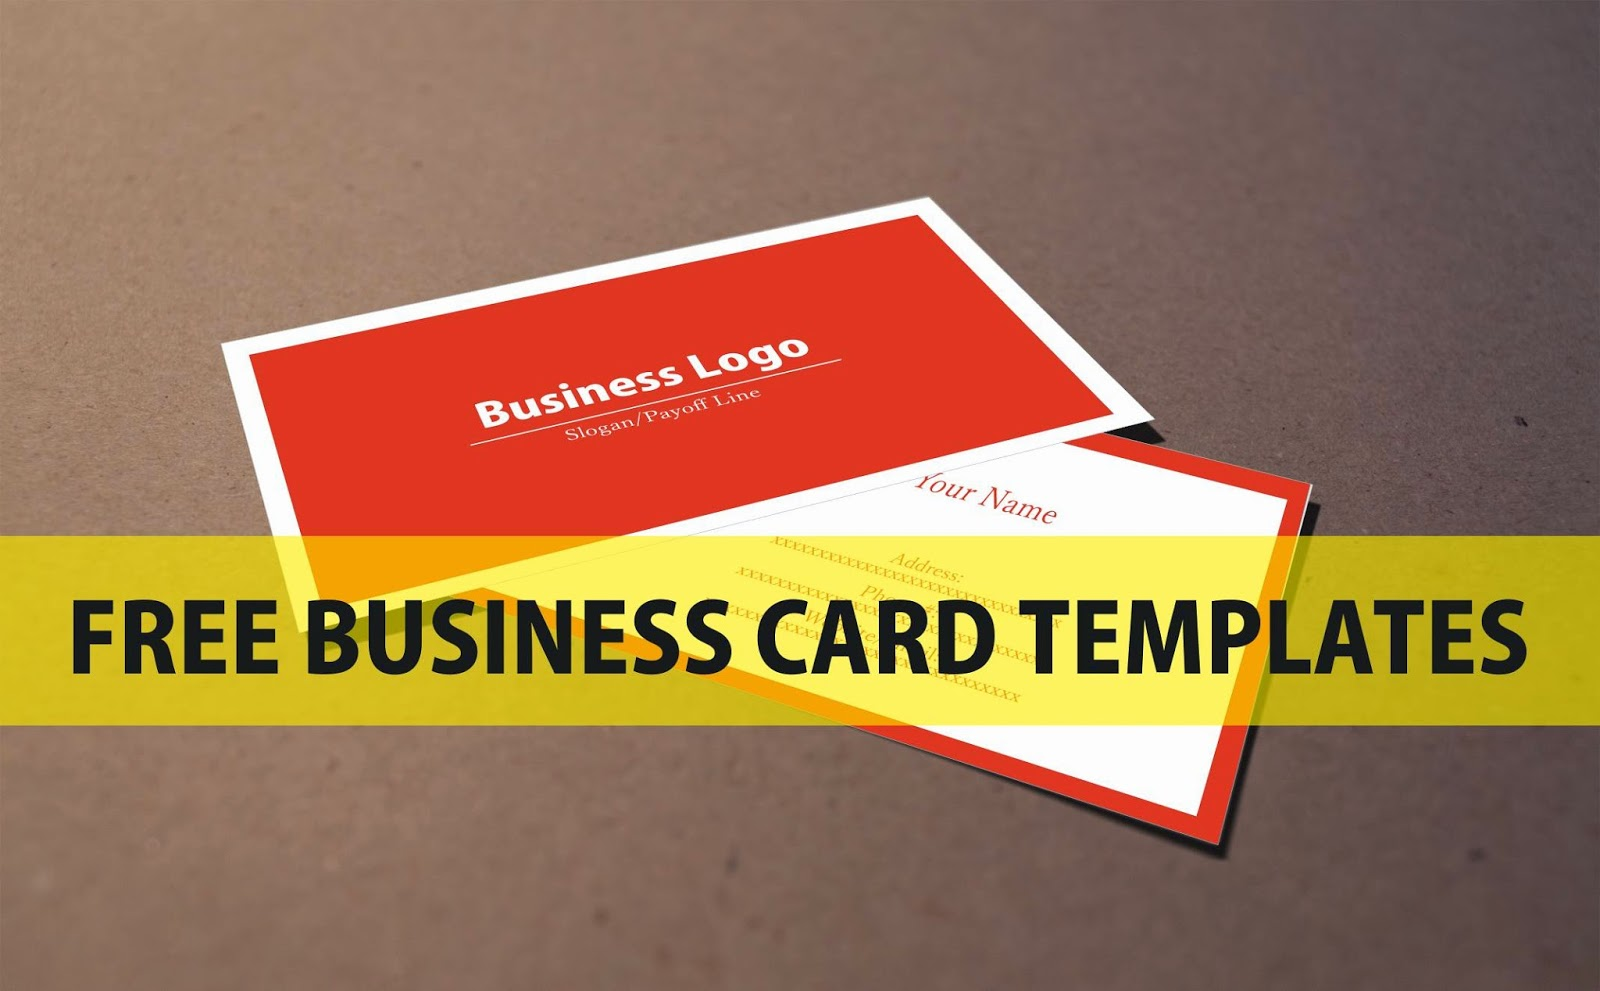 Free business card template download coreldraw file a graphic free business card template download coreldraw file wajeb